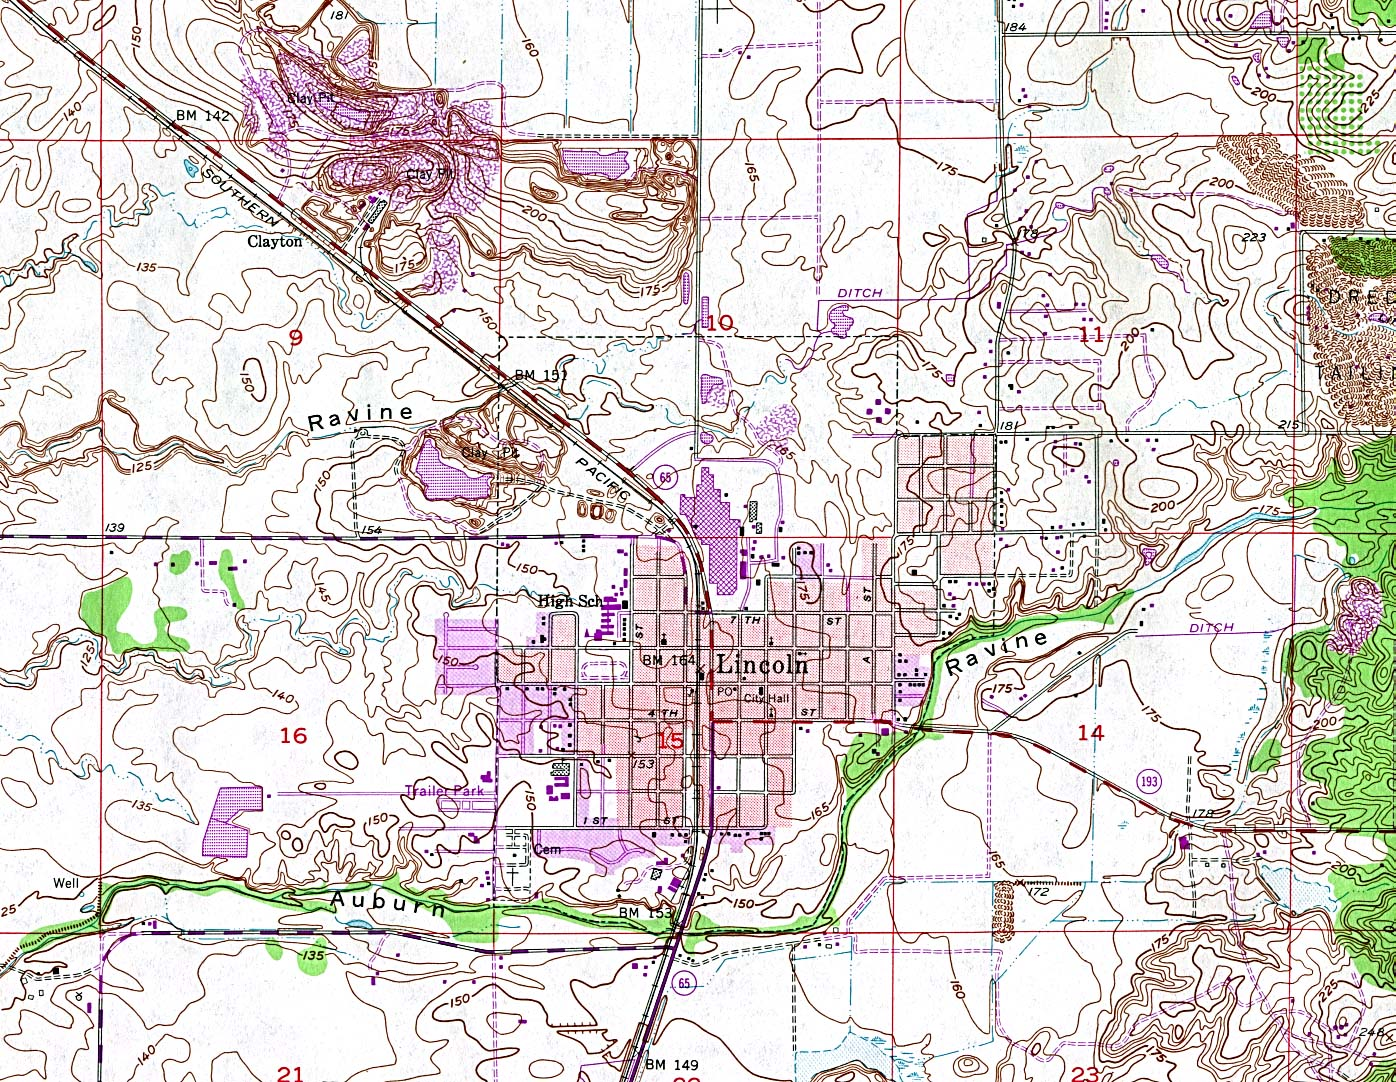 Lincoln Topographic City Map, California, United States